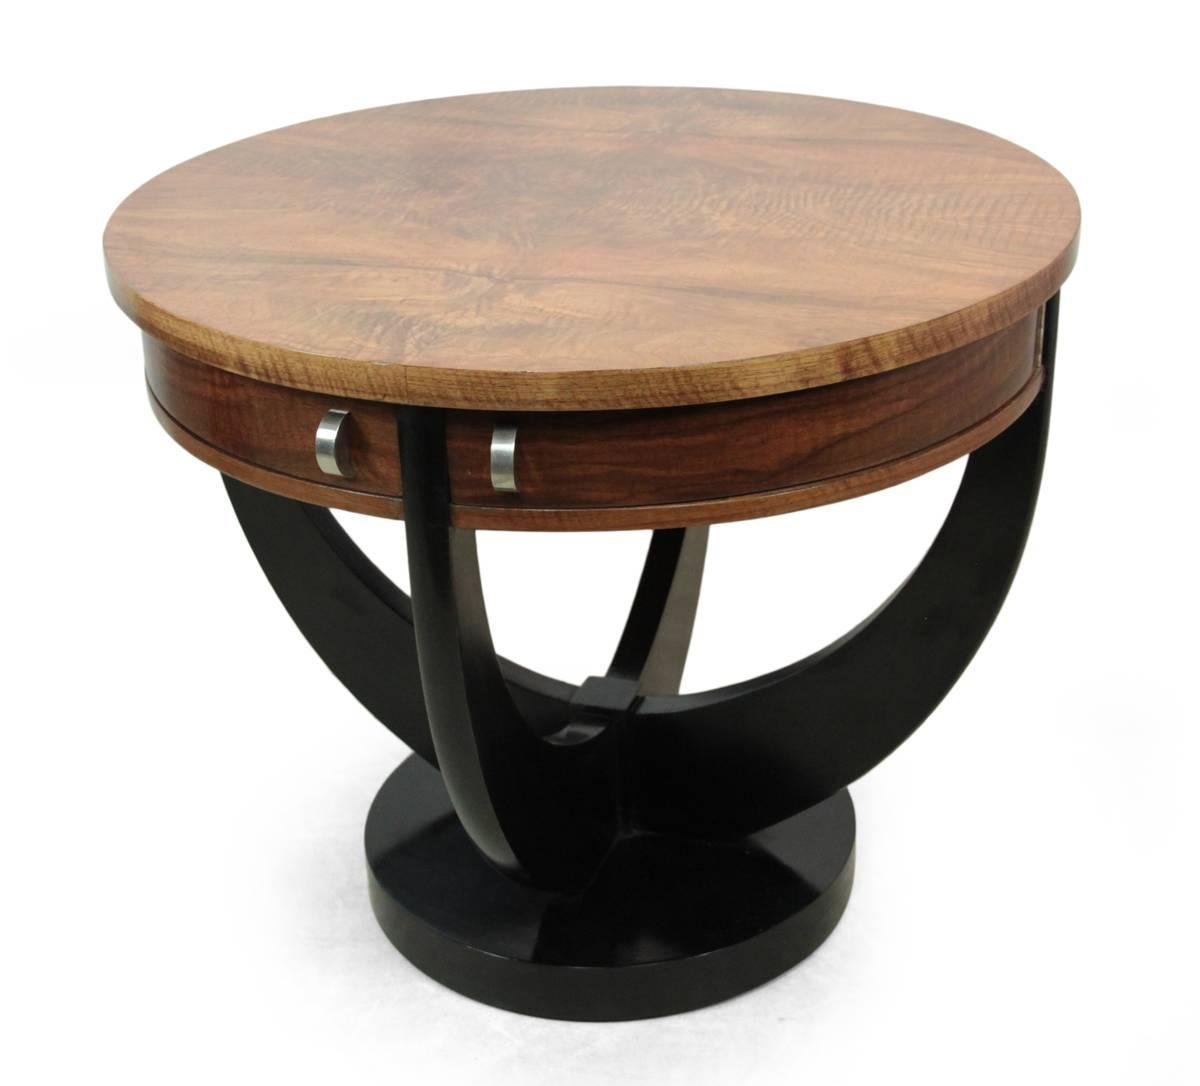 french art deco walnut coffee table with drawers circa 1930 at 1stdibs. Black Bedroom Furniture Sets. Home Design Ideas